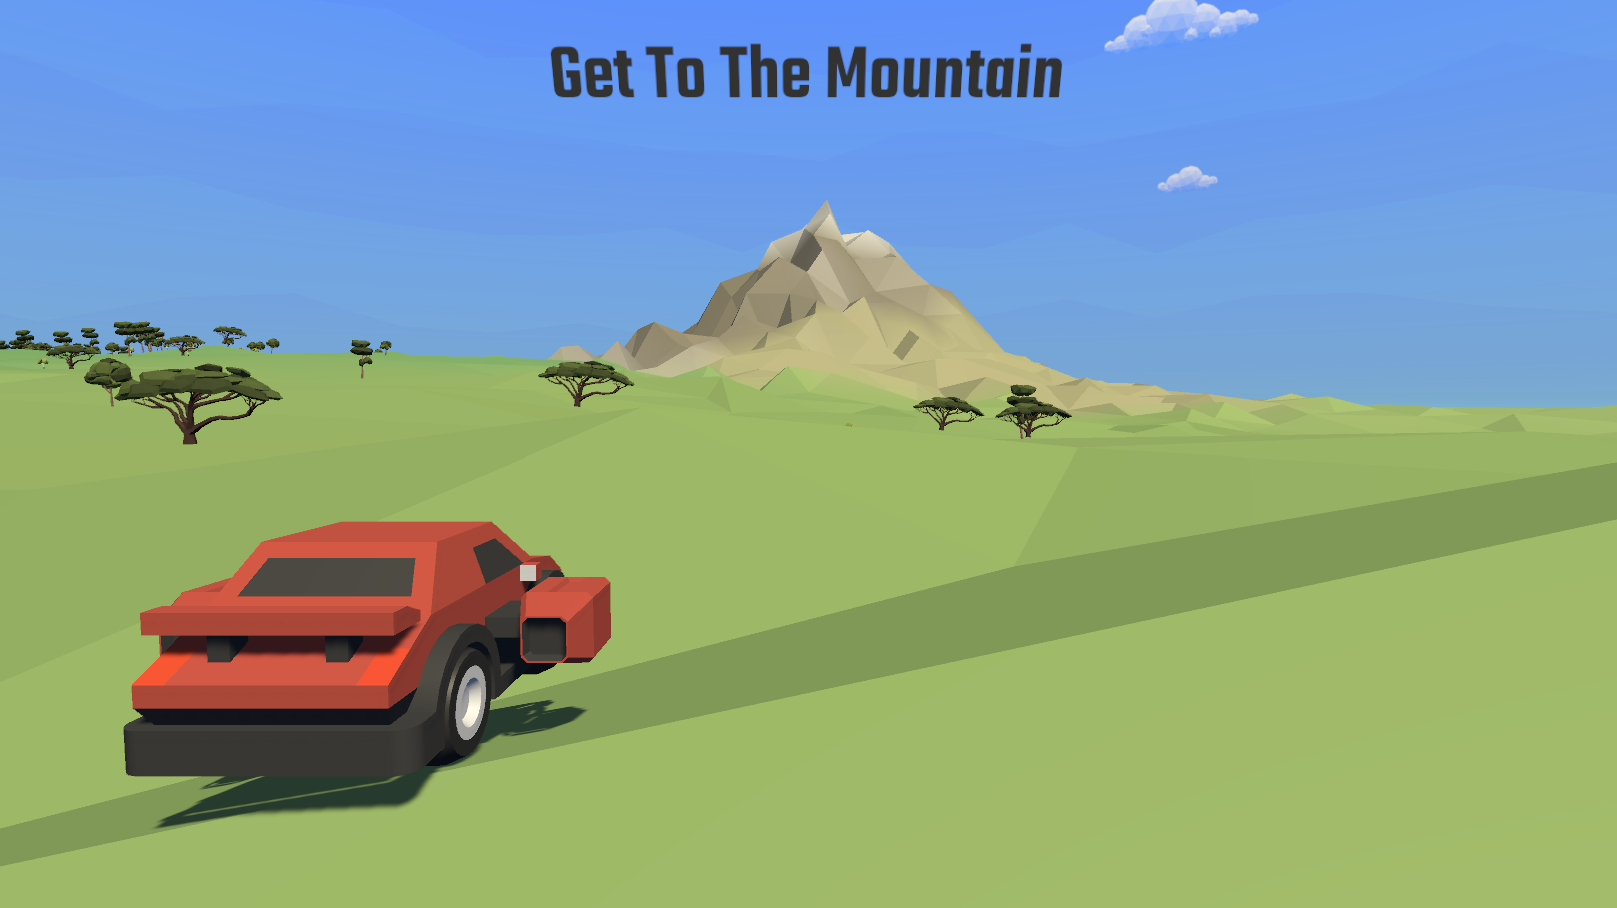 Get To The Mountain